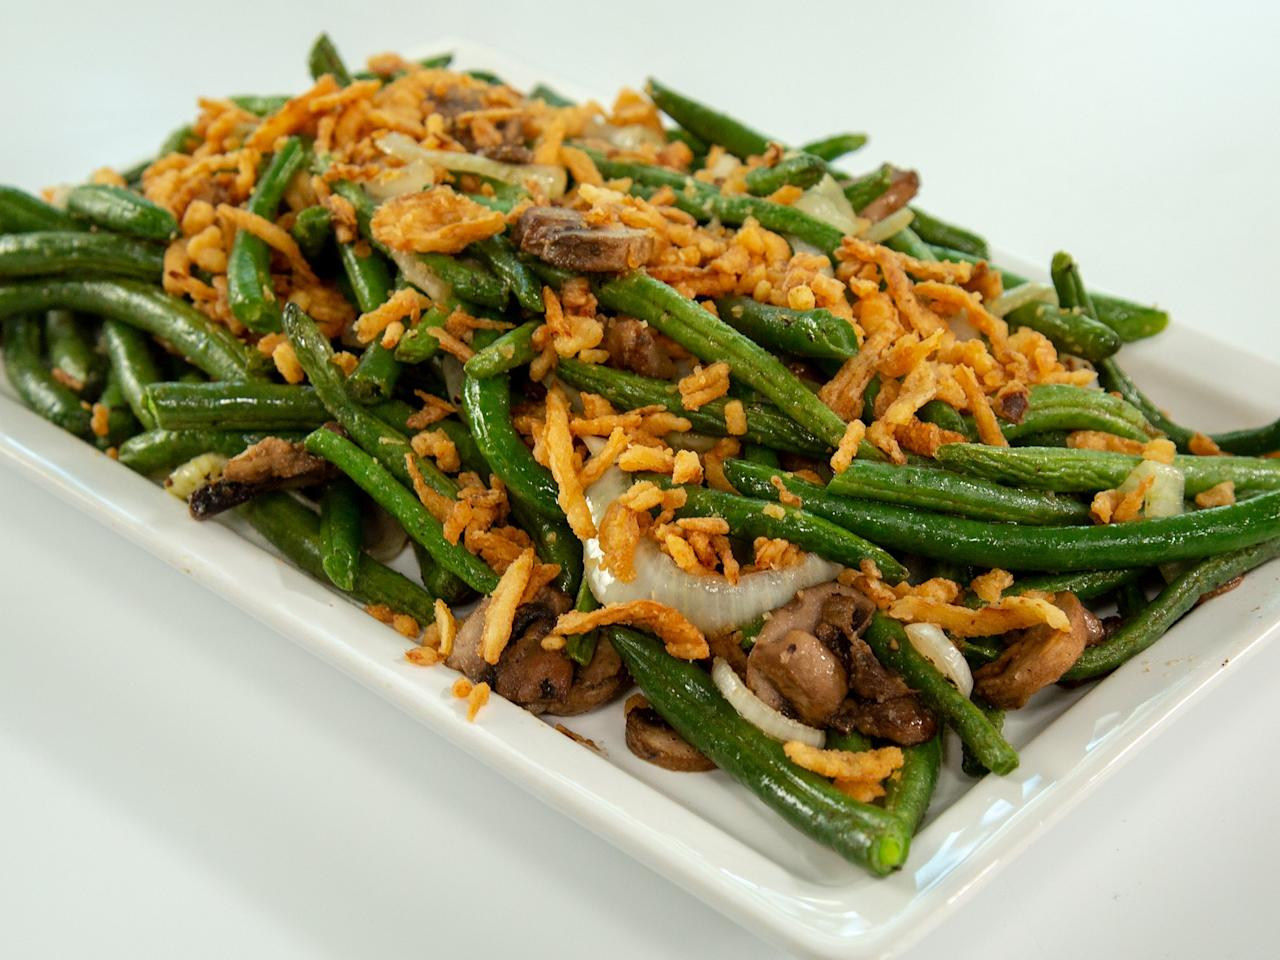 """<p>Hate creamy casseroles? This spin on traditional green bean casserole isn't just lightened and faster. It comes out tasting like a hearty roasted vegetable dish with the perfect balance of tenderness and crisp. The mushrooms and onions are nicely softened rather than mushy, and everything comes together thanks to the crunch and slight saltiness from the fried onions. It also makes a great, quick side dish for a weeknight. </p> <p><a href=""""https://www.myrecipes.com/recipe/air-fried-green-bean-casserole"""">Air Fried Green Bean Casserole Recipe</a></p>"""